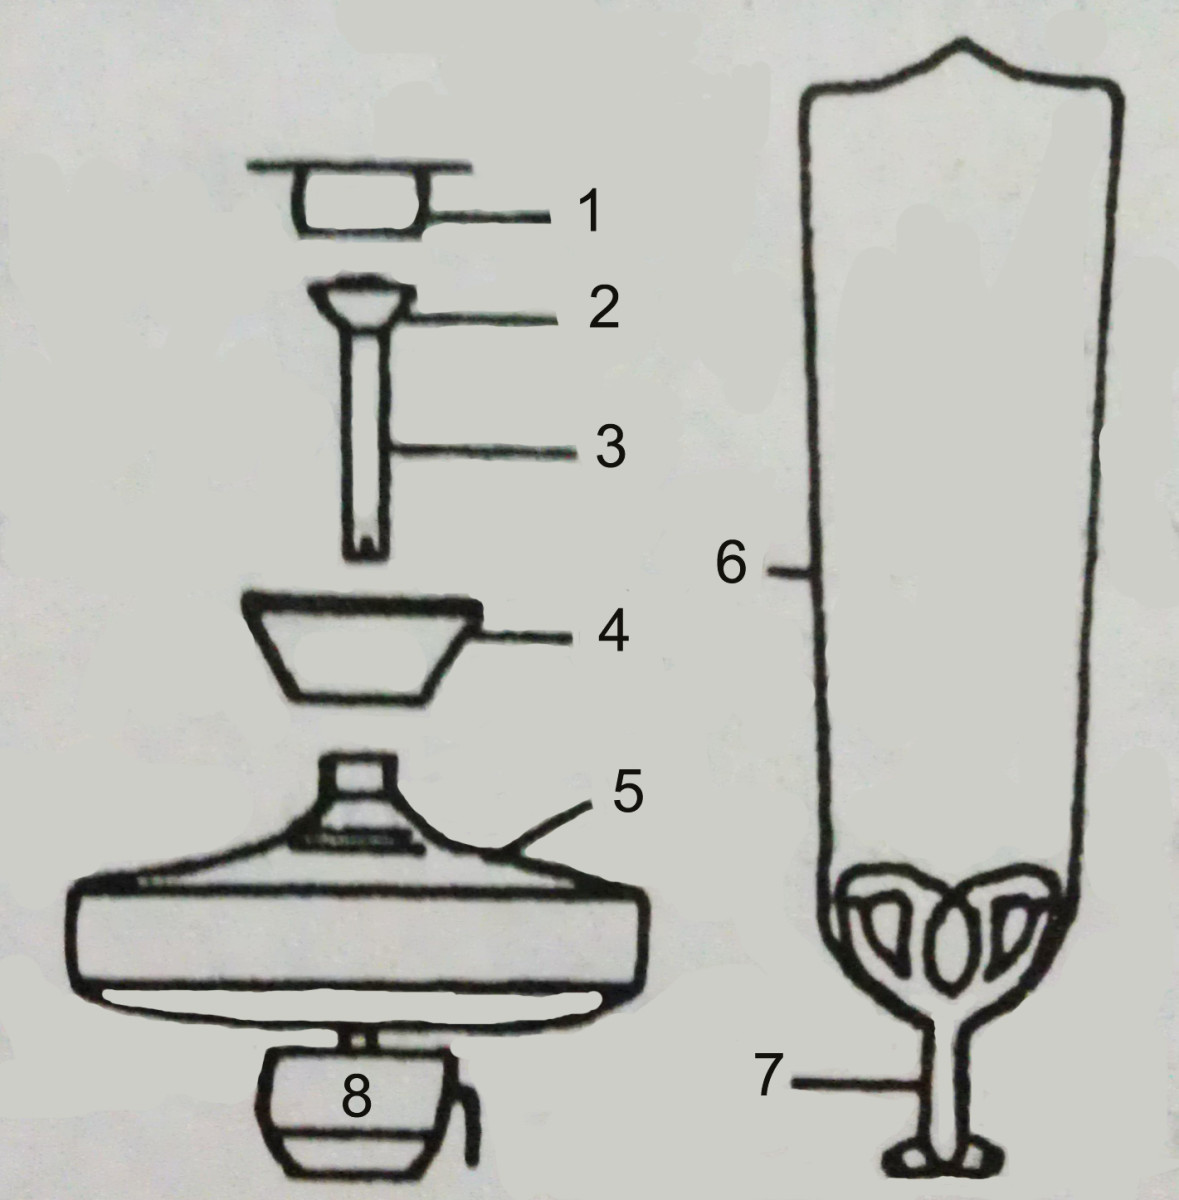 Ceiling fan parts: 1) mounting plate, 2) mounting ball on the down rod, 3) down rod, 4) canopy/cover, 5) fan motor, 6) blade, 7) blade mount and 8) light fixture.